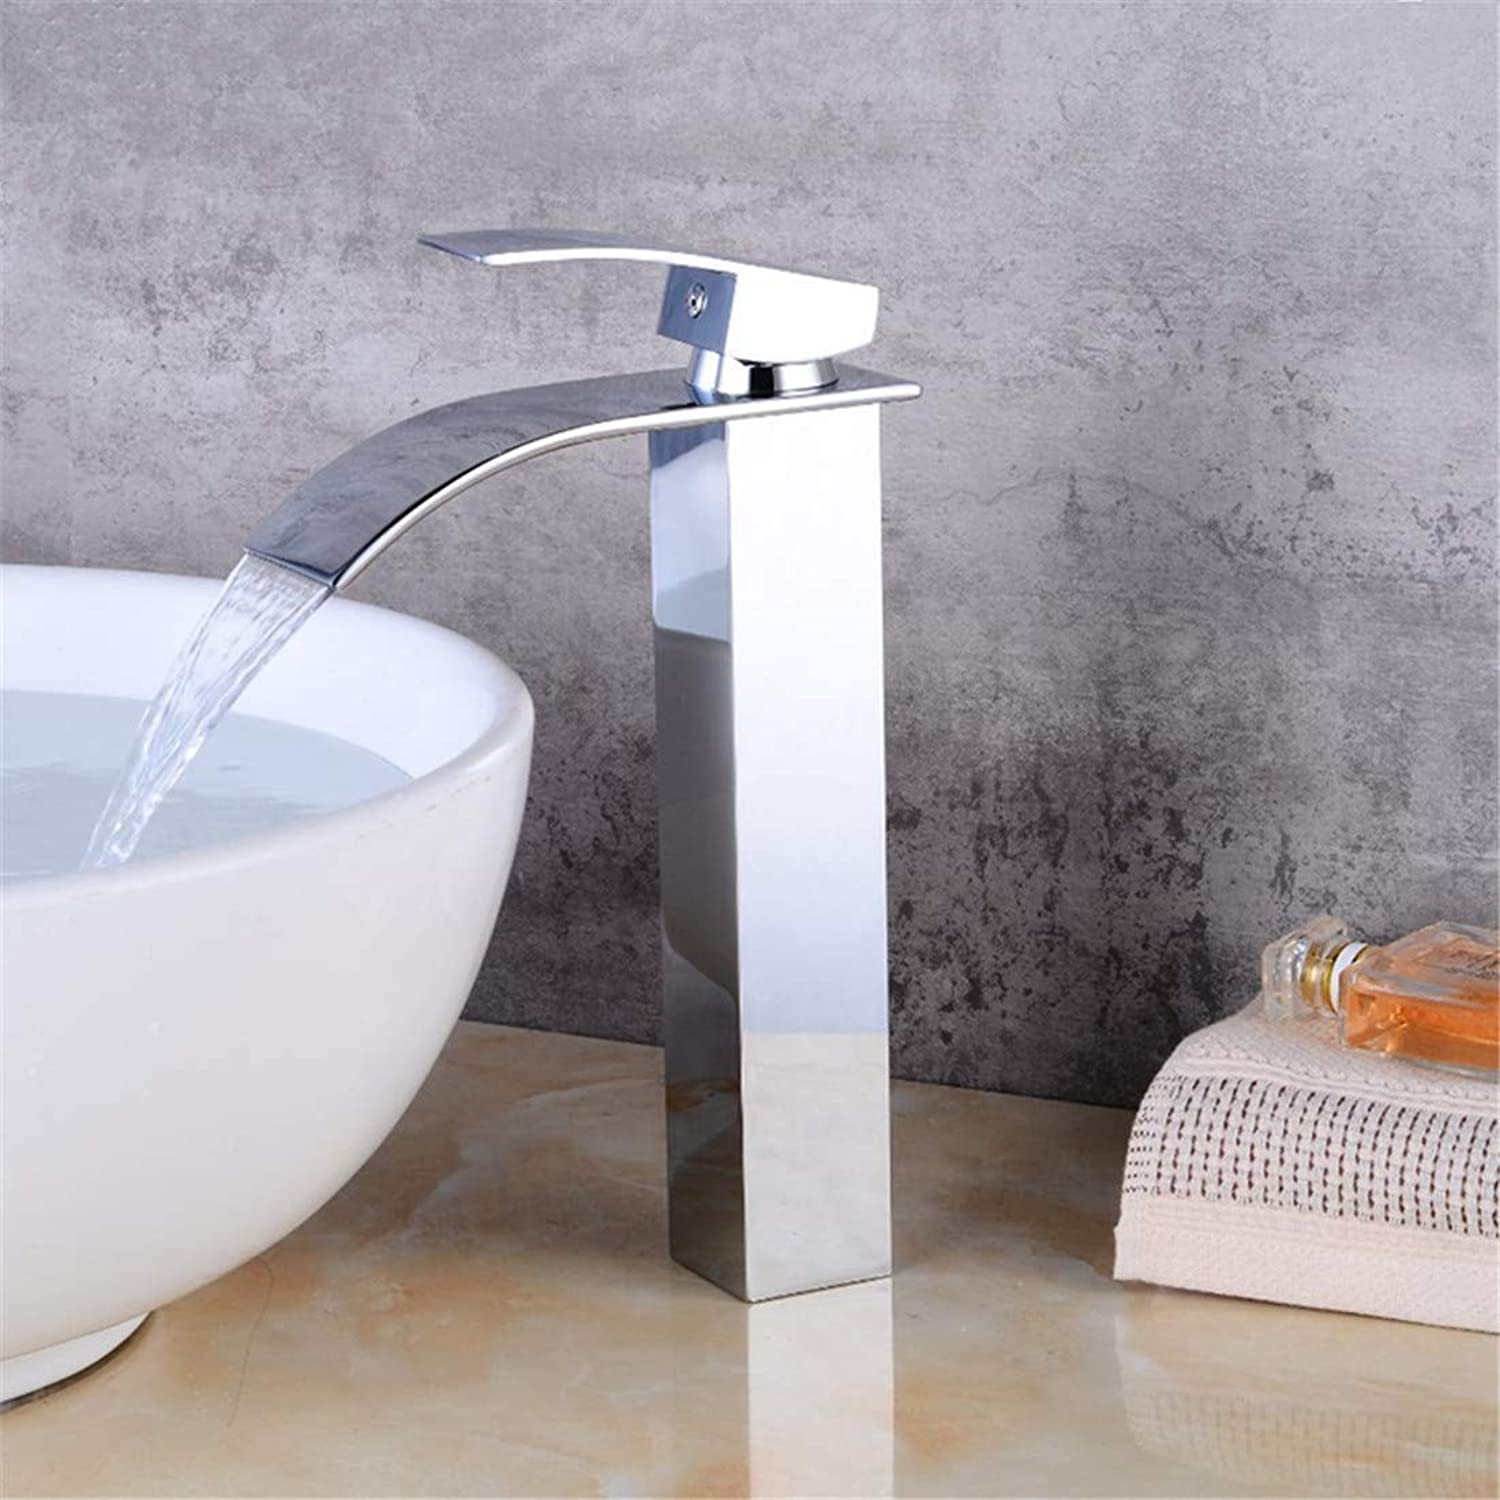 Retro Plated Hot and Cold Faucet Faucetbrass Waterfall Bathroom Faucet Basin Faucet Vanity Vessel Basin Mixer Tap